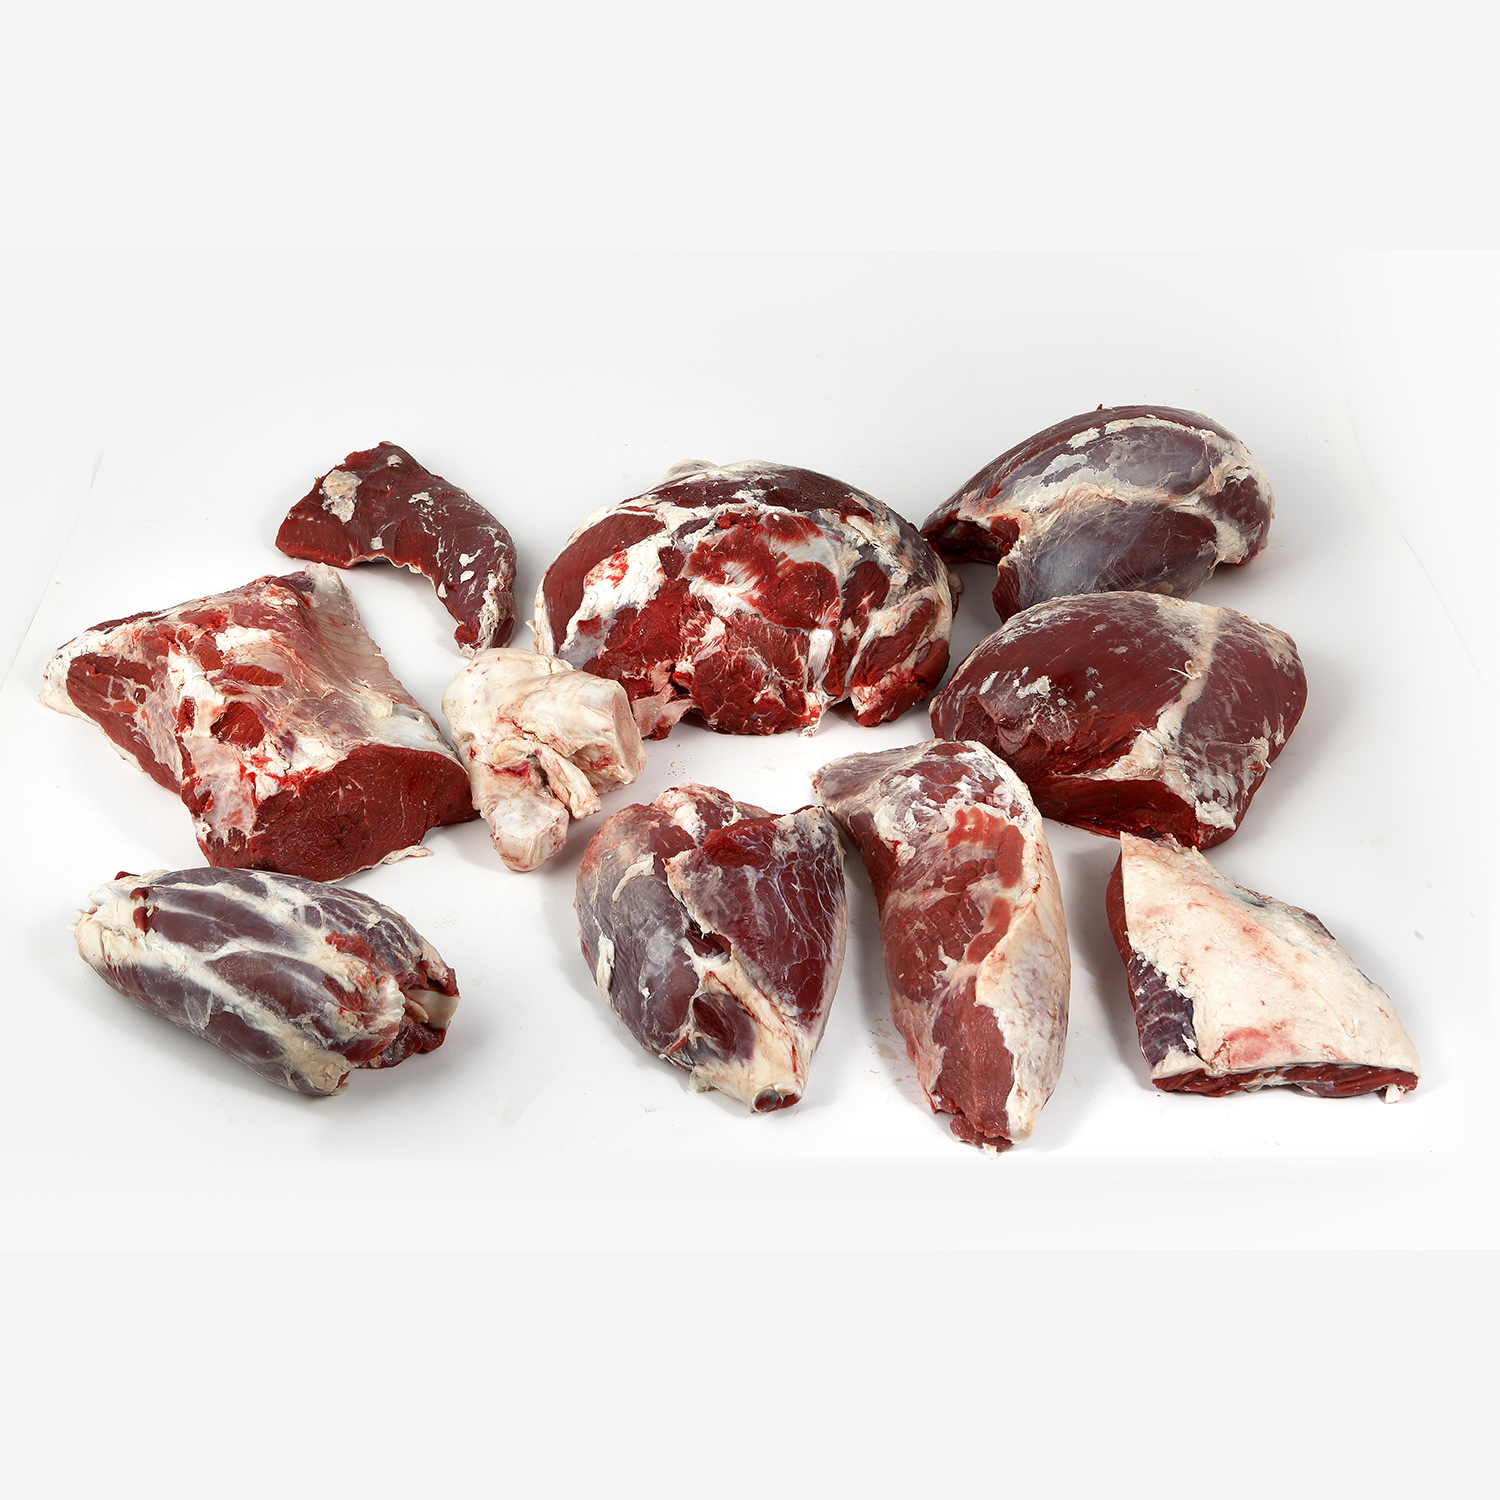 Frozen beef and veal achilles tendon meat fresh Italy EU CENTRO CARNI COMPANY SPA